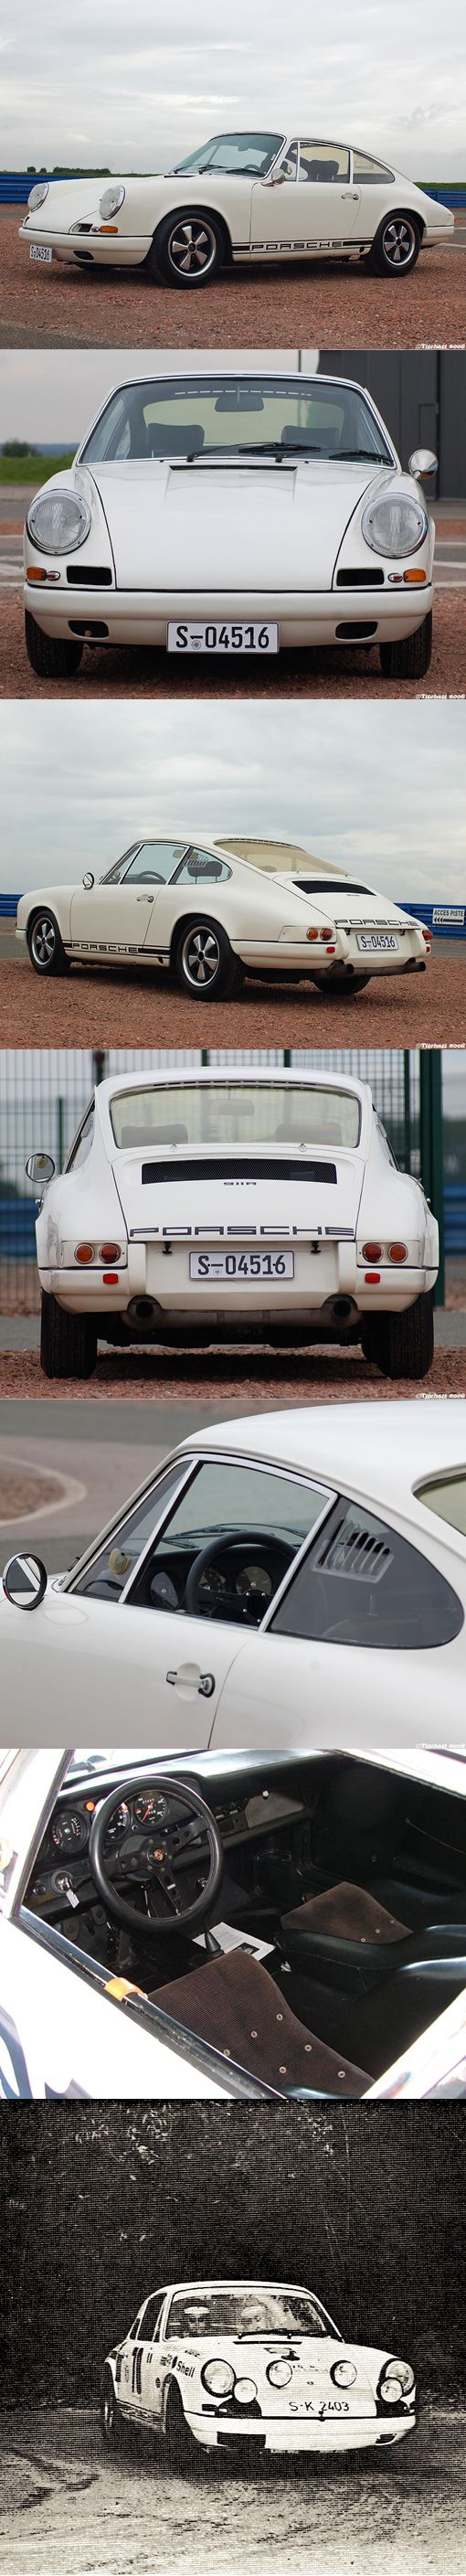 1967 Porsche 911 R / Germany / 20pcs + 4 prototypes / white / 210hp